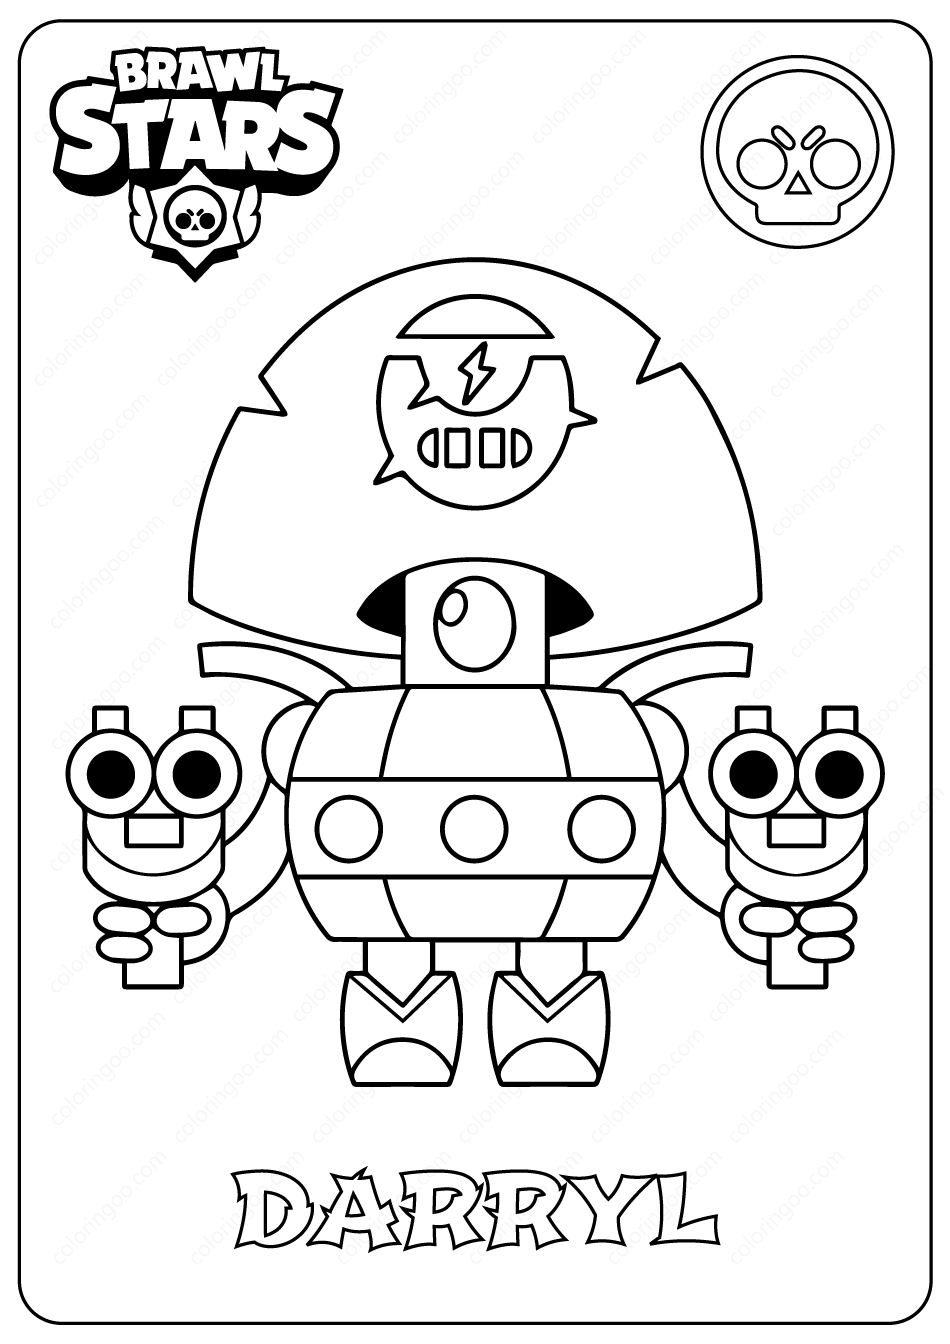 Brawl Stars Darryl Pdf Coloring Pages Coloring Pages Star Coloring Pages Brawl